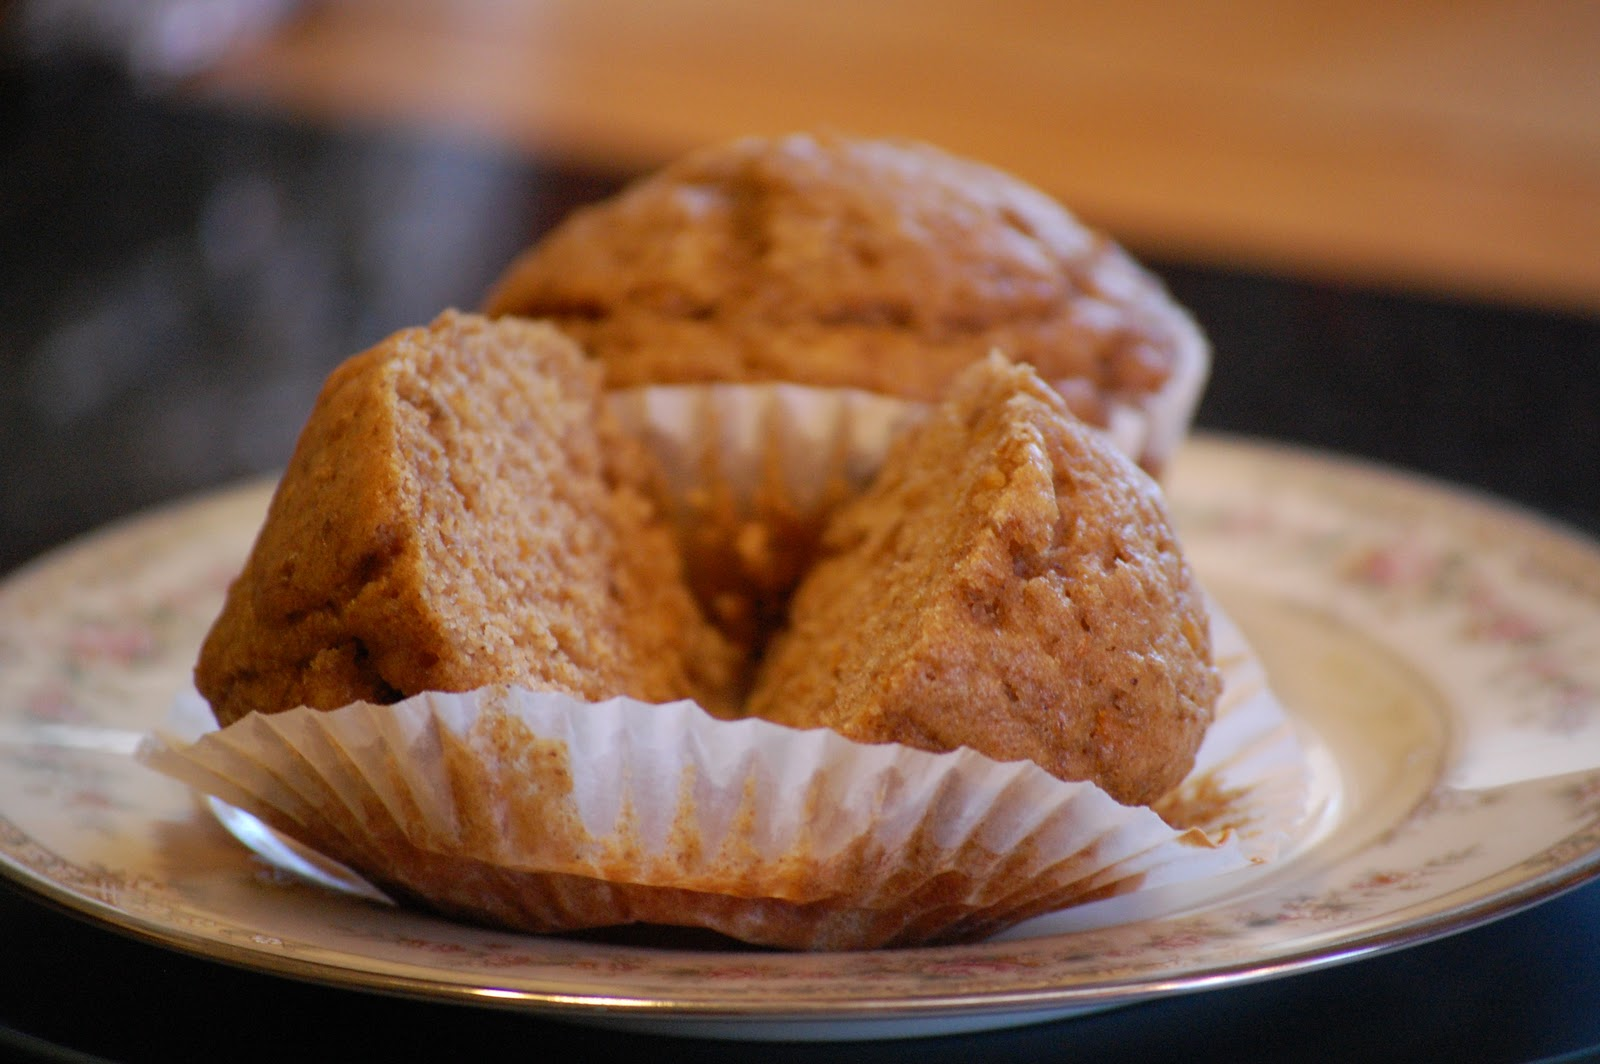 ... muffin recipe that I use and it is very adaptable, allowing for any